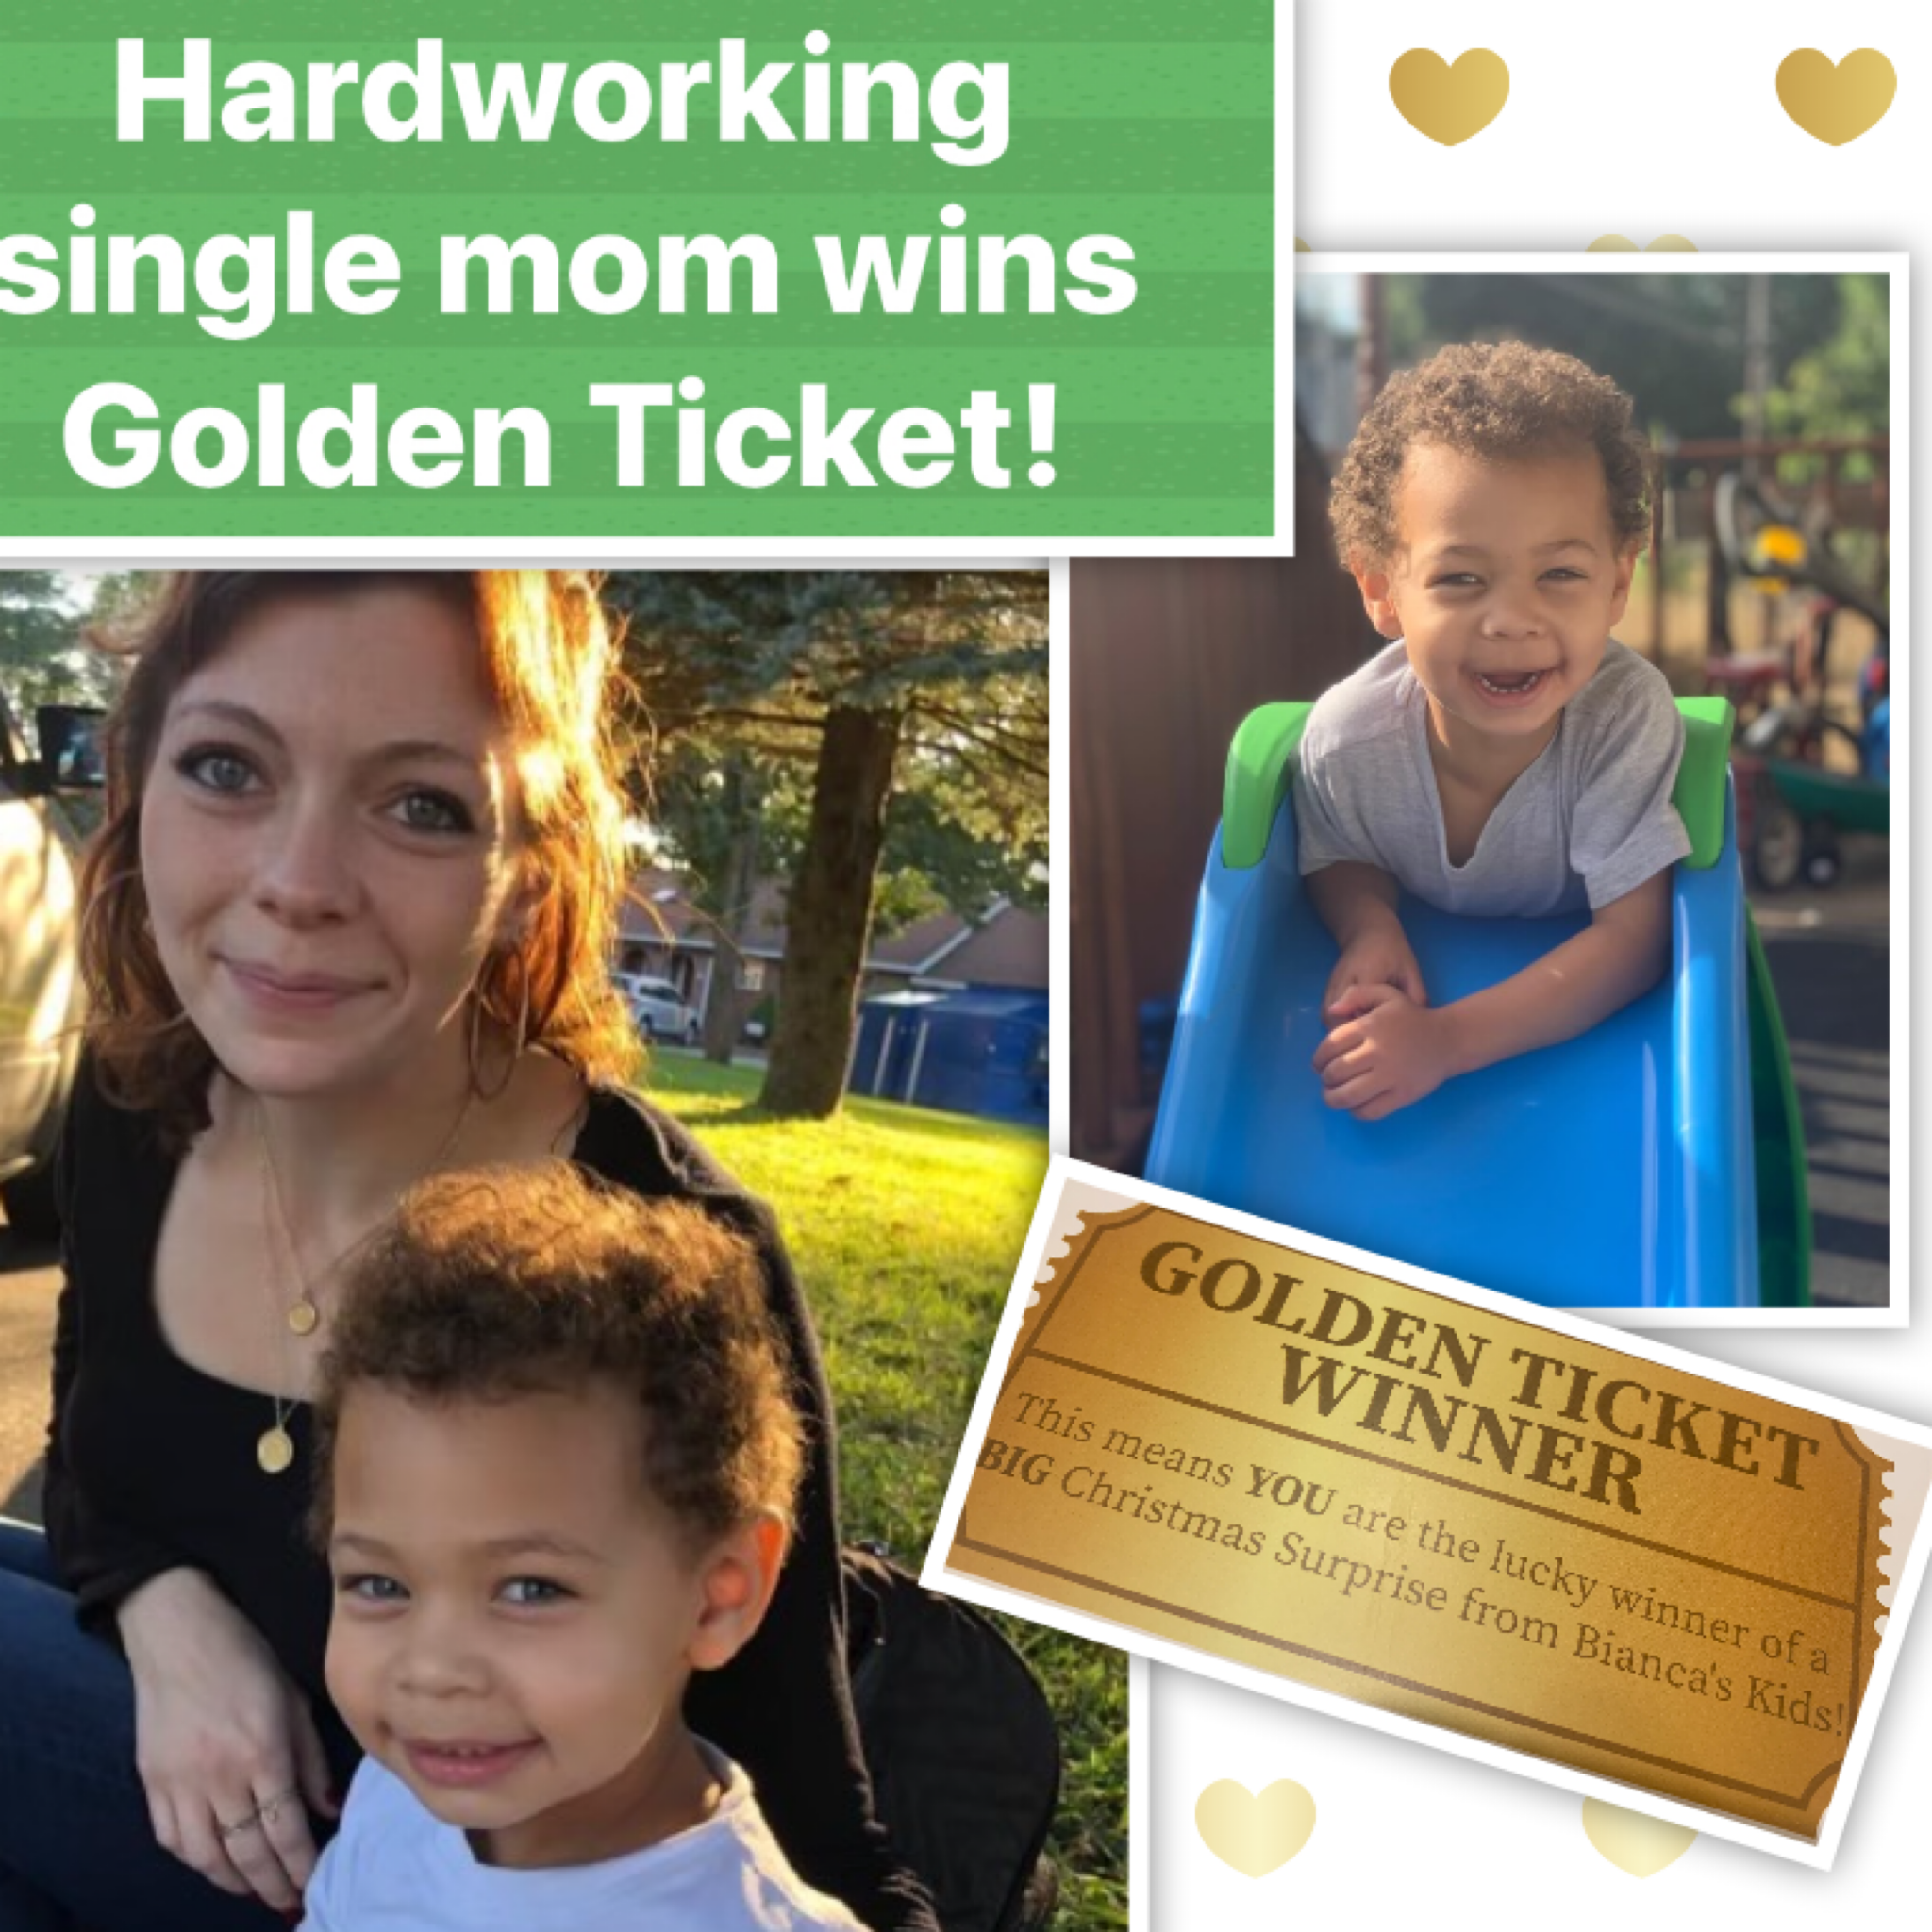 HARDWORKING SINGLE MOM IS OUR NEXT GOLDEN TICKET WINNER!